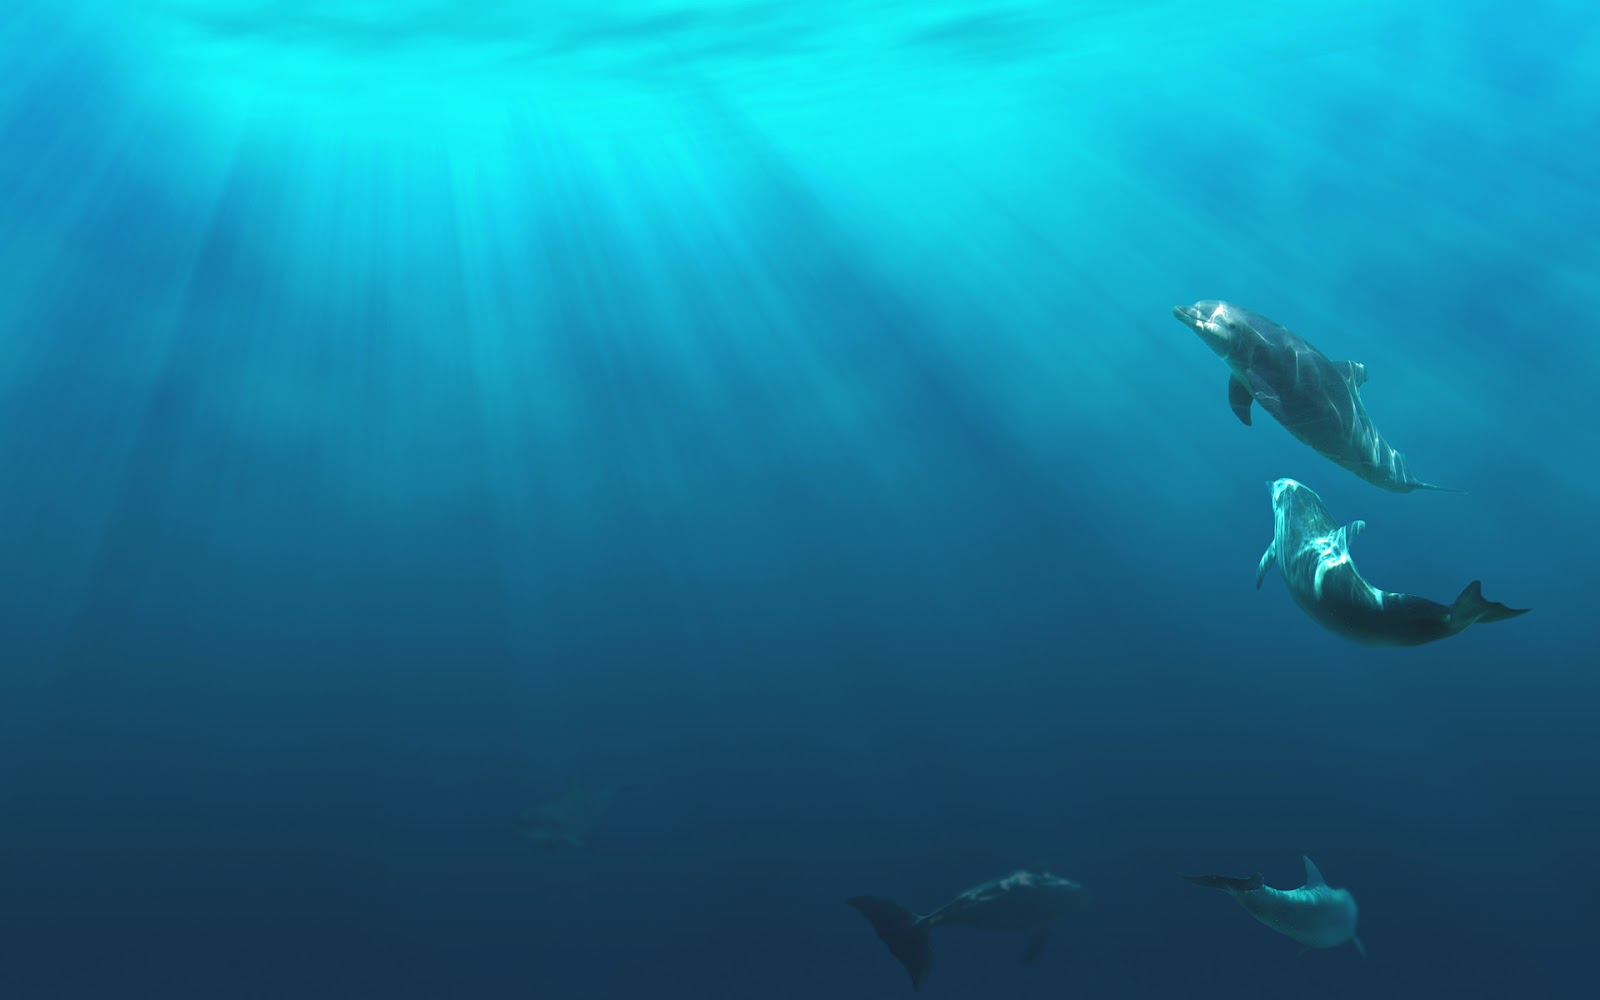 HD Animals Wallpapers With A Group Of Dolphins In The Blue Sea